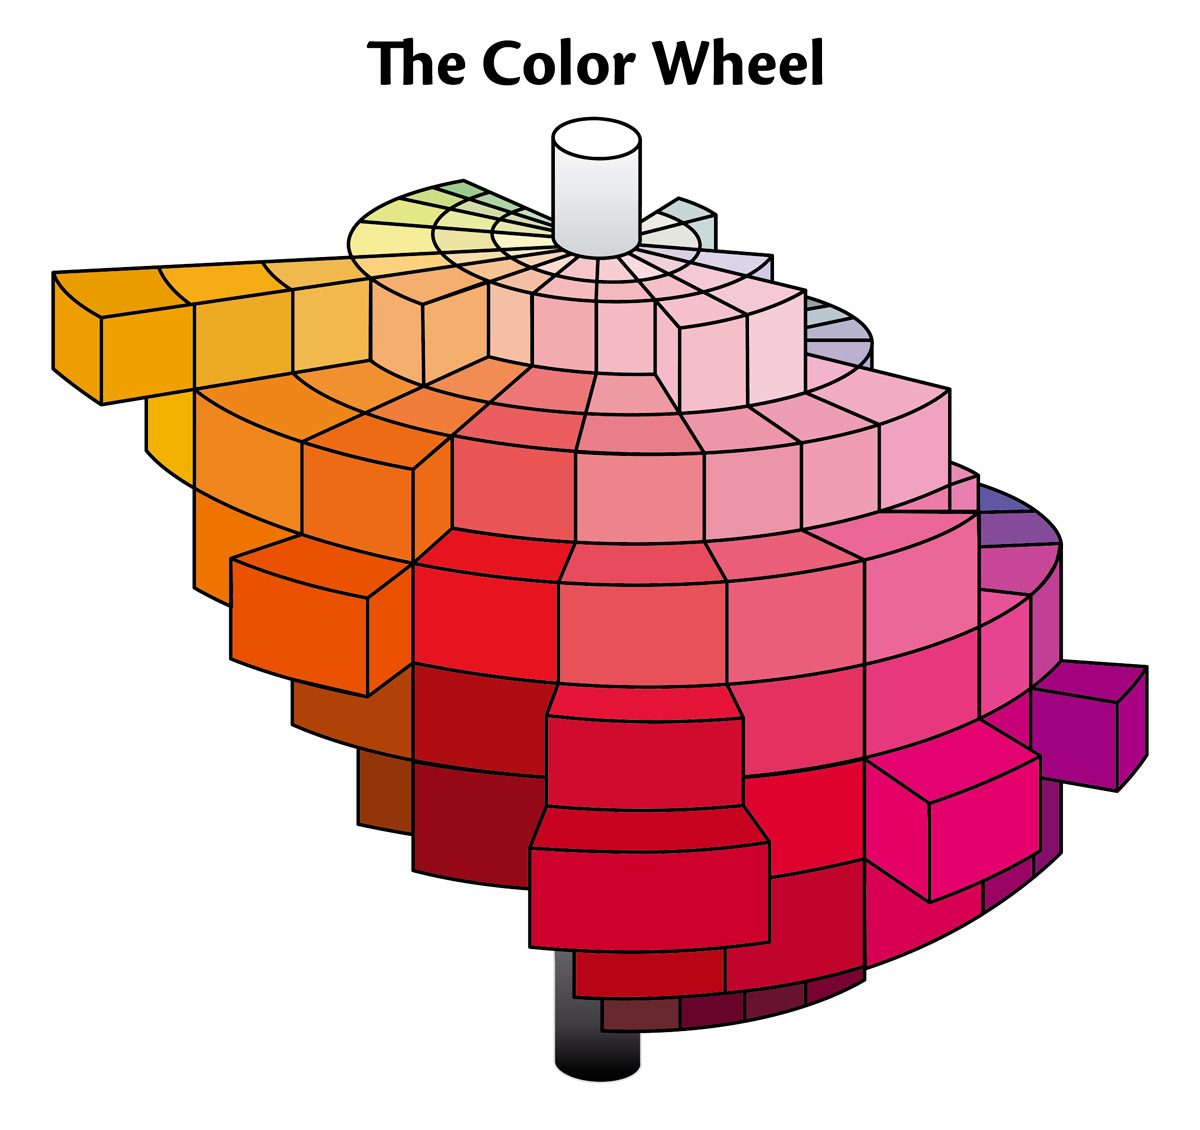 The three dimensions of color. Hues lie around a circle in the horizontal plane. Saturation lies in the horizonal plane, from zero in the center, to maximum at the outside edge. Tone varies in the vertical plane, from the lightest at the top to the darkest at the bottom.